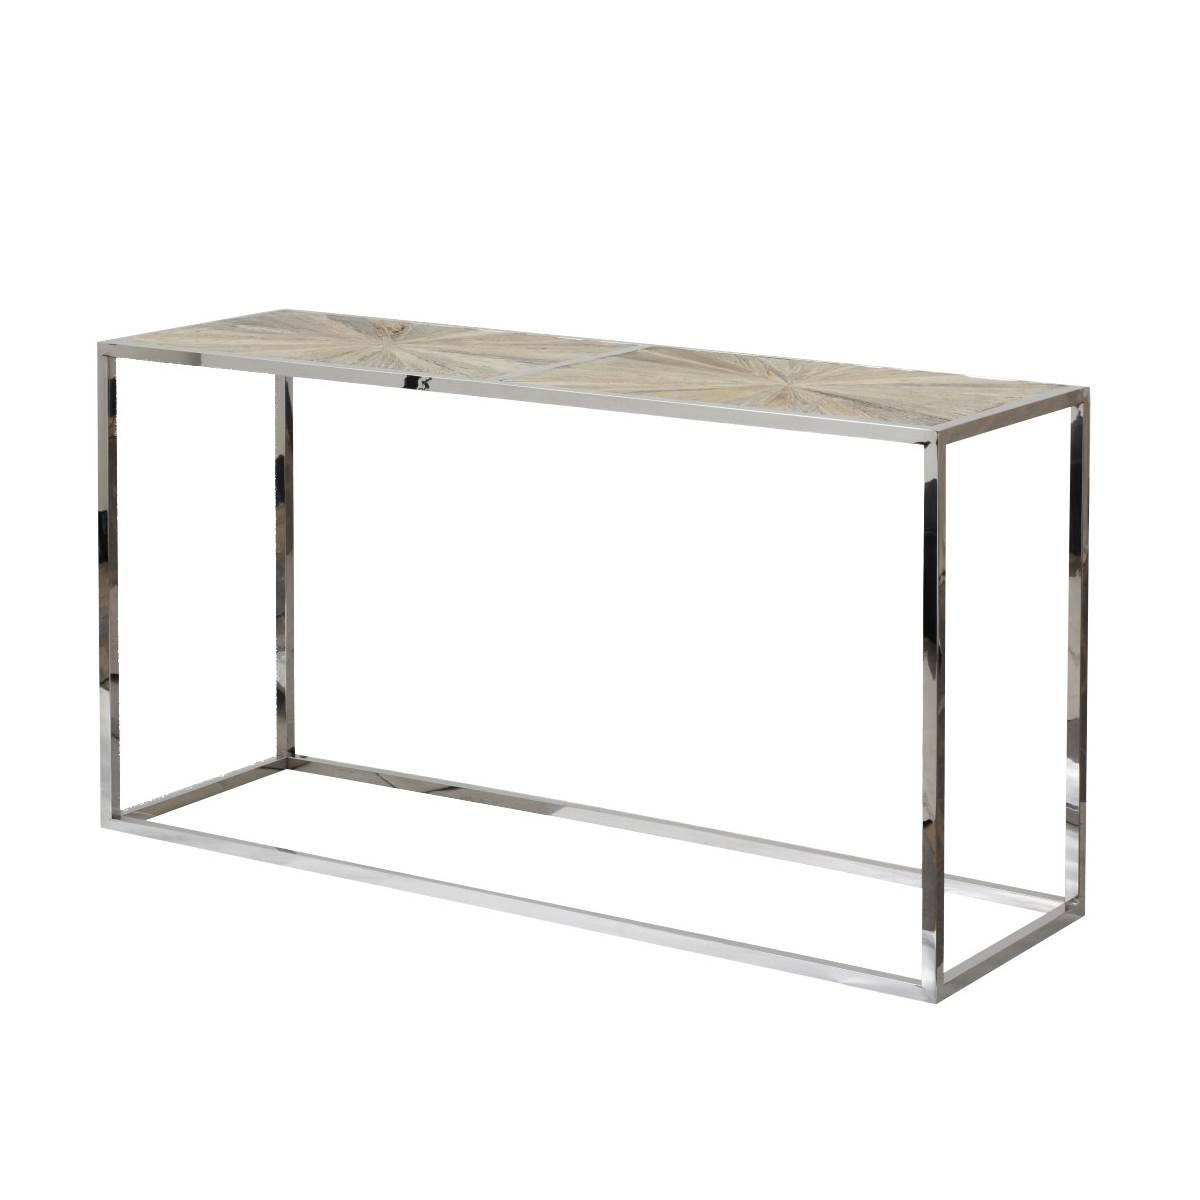 Parquet Console Table | Marshall | Pinterest Intended For Parsons Clear Glass Top & Stainless Steel Base 48X16 Console Tables (View 11 of 20)